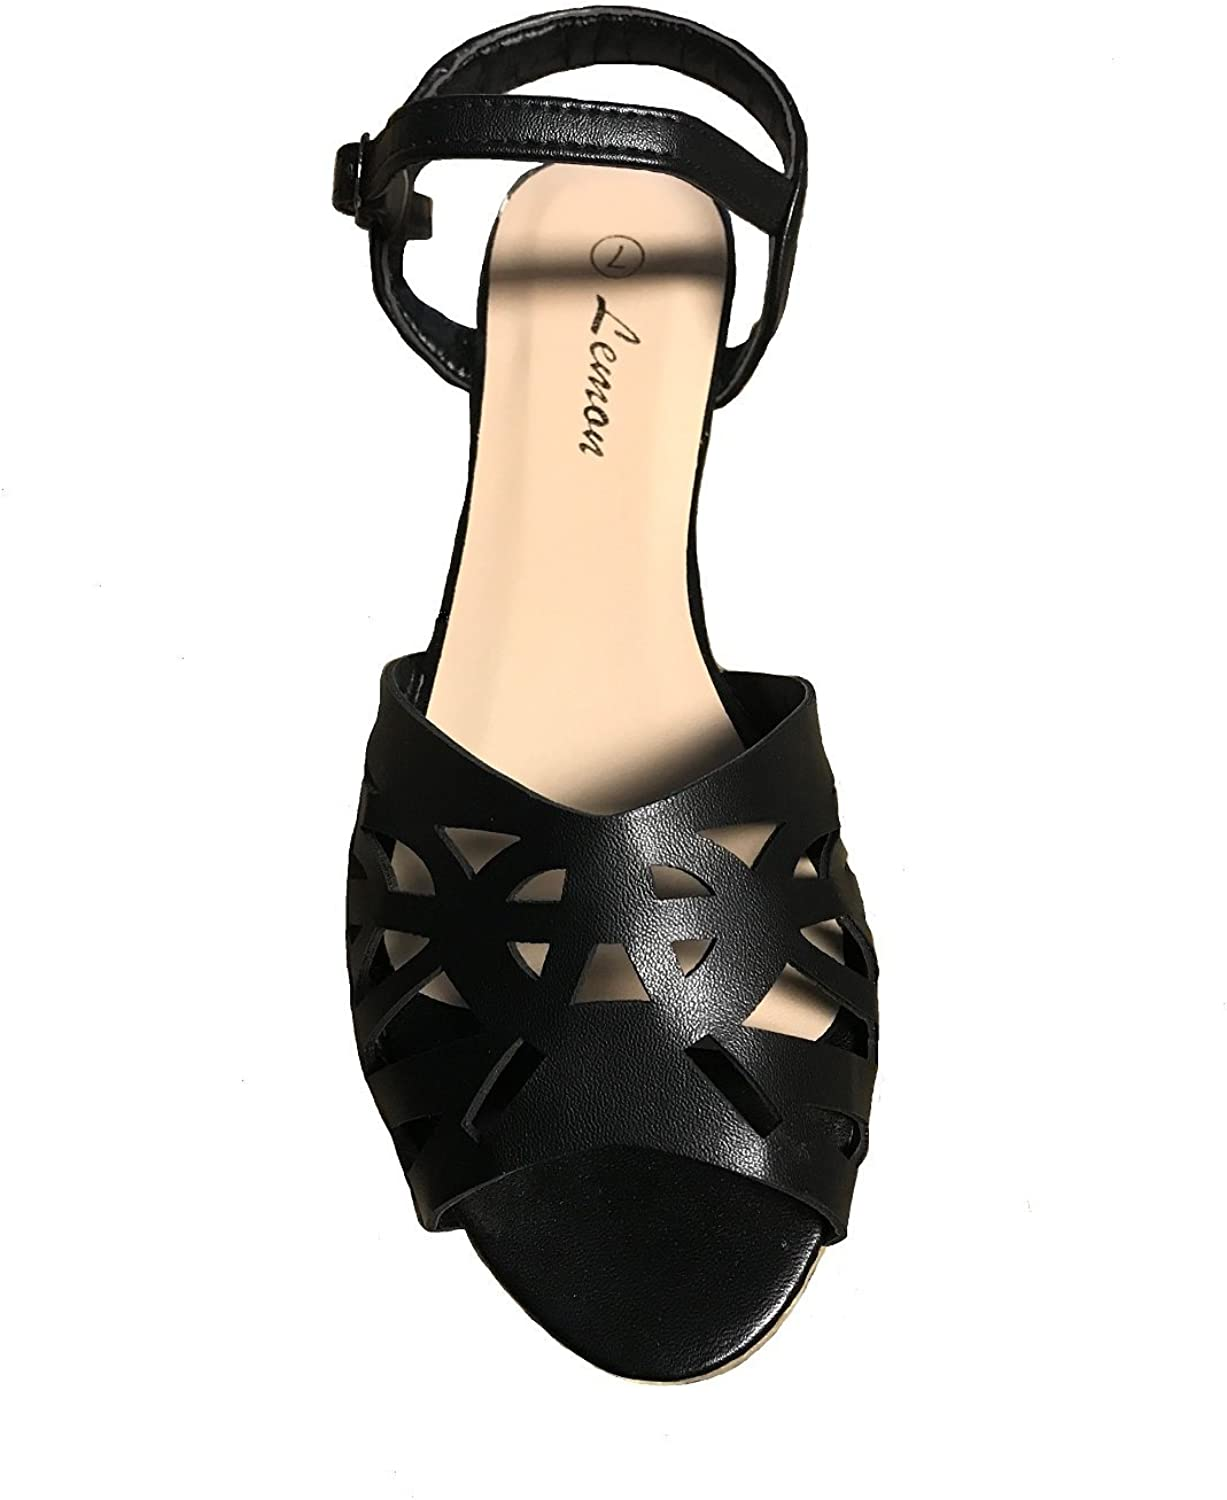 Lemon Lemon Black Faux Leather Ankle Strap Sandals shoes